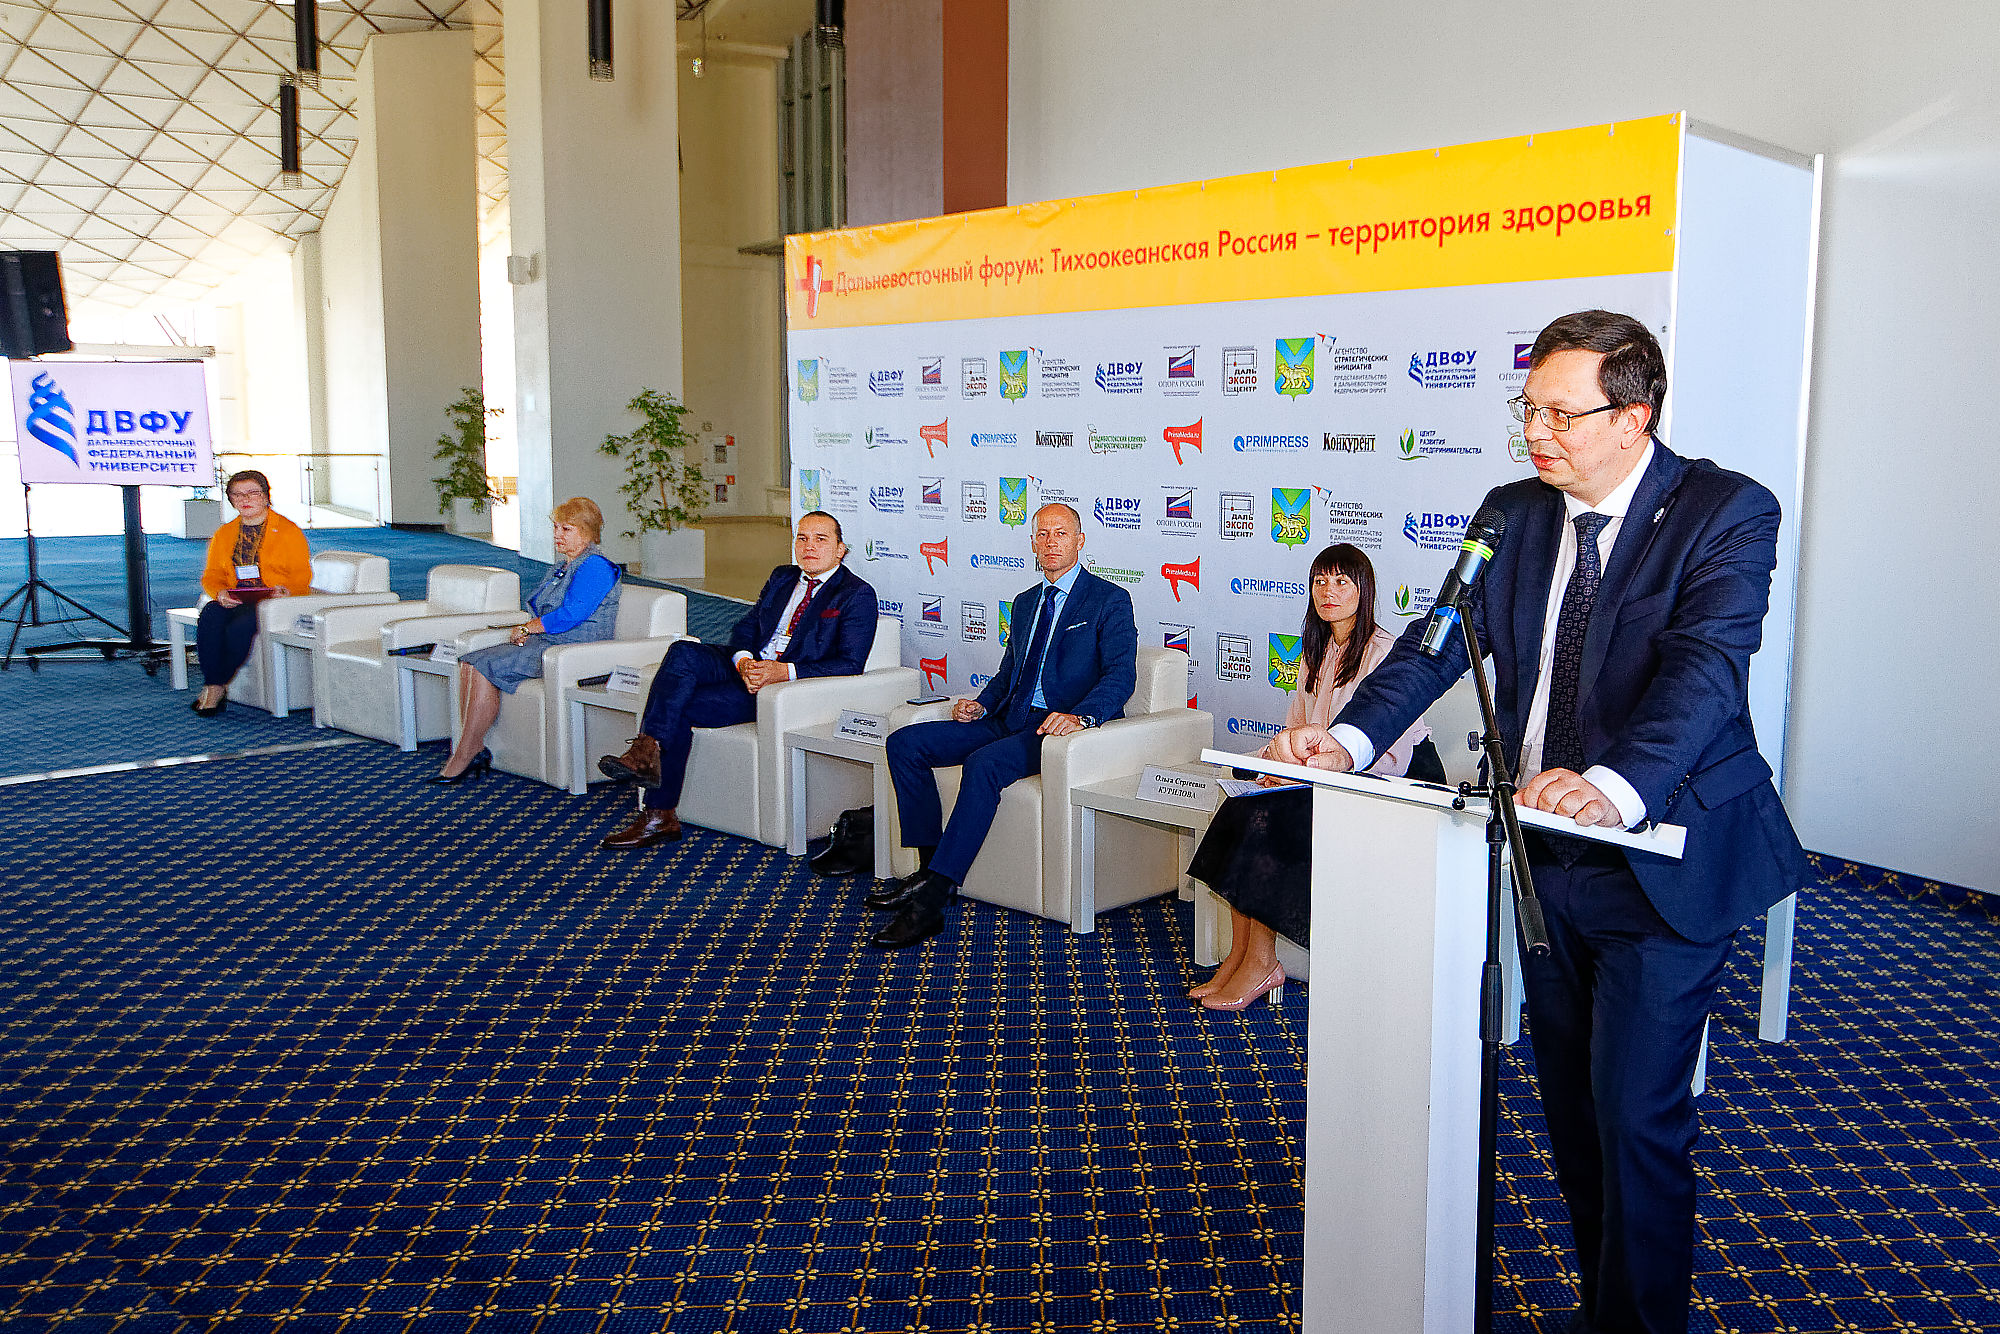 Potential of FEFU Medical Cluster was Presented at Medical Forum